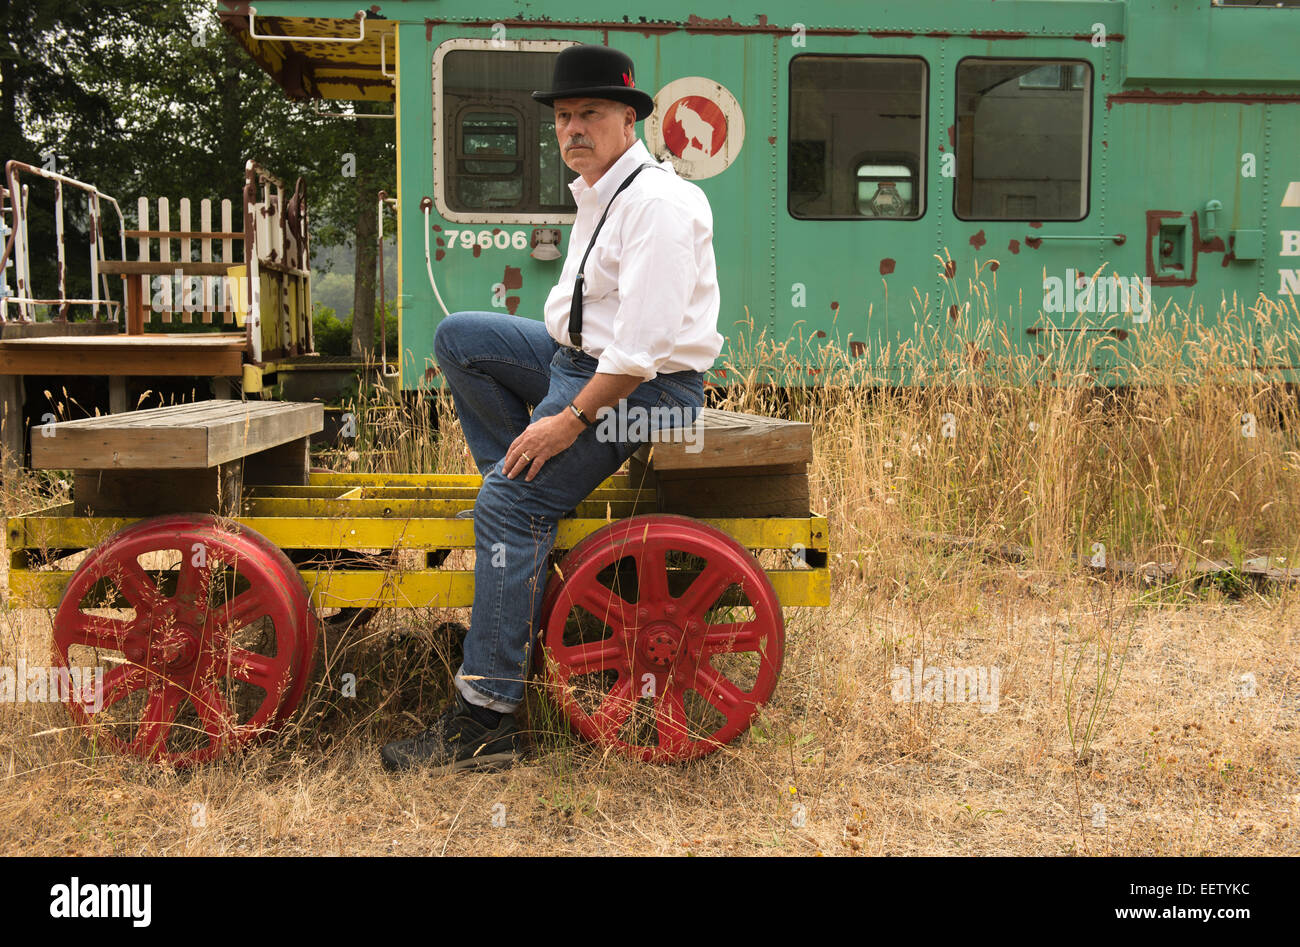 Mature male in bowler hat sitting on a railway car - Stock Image